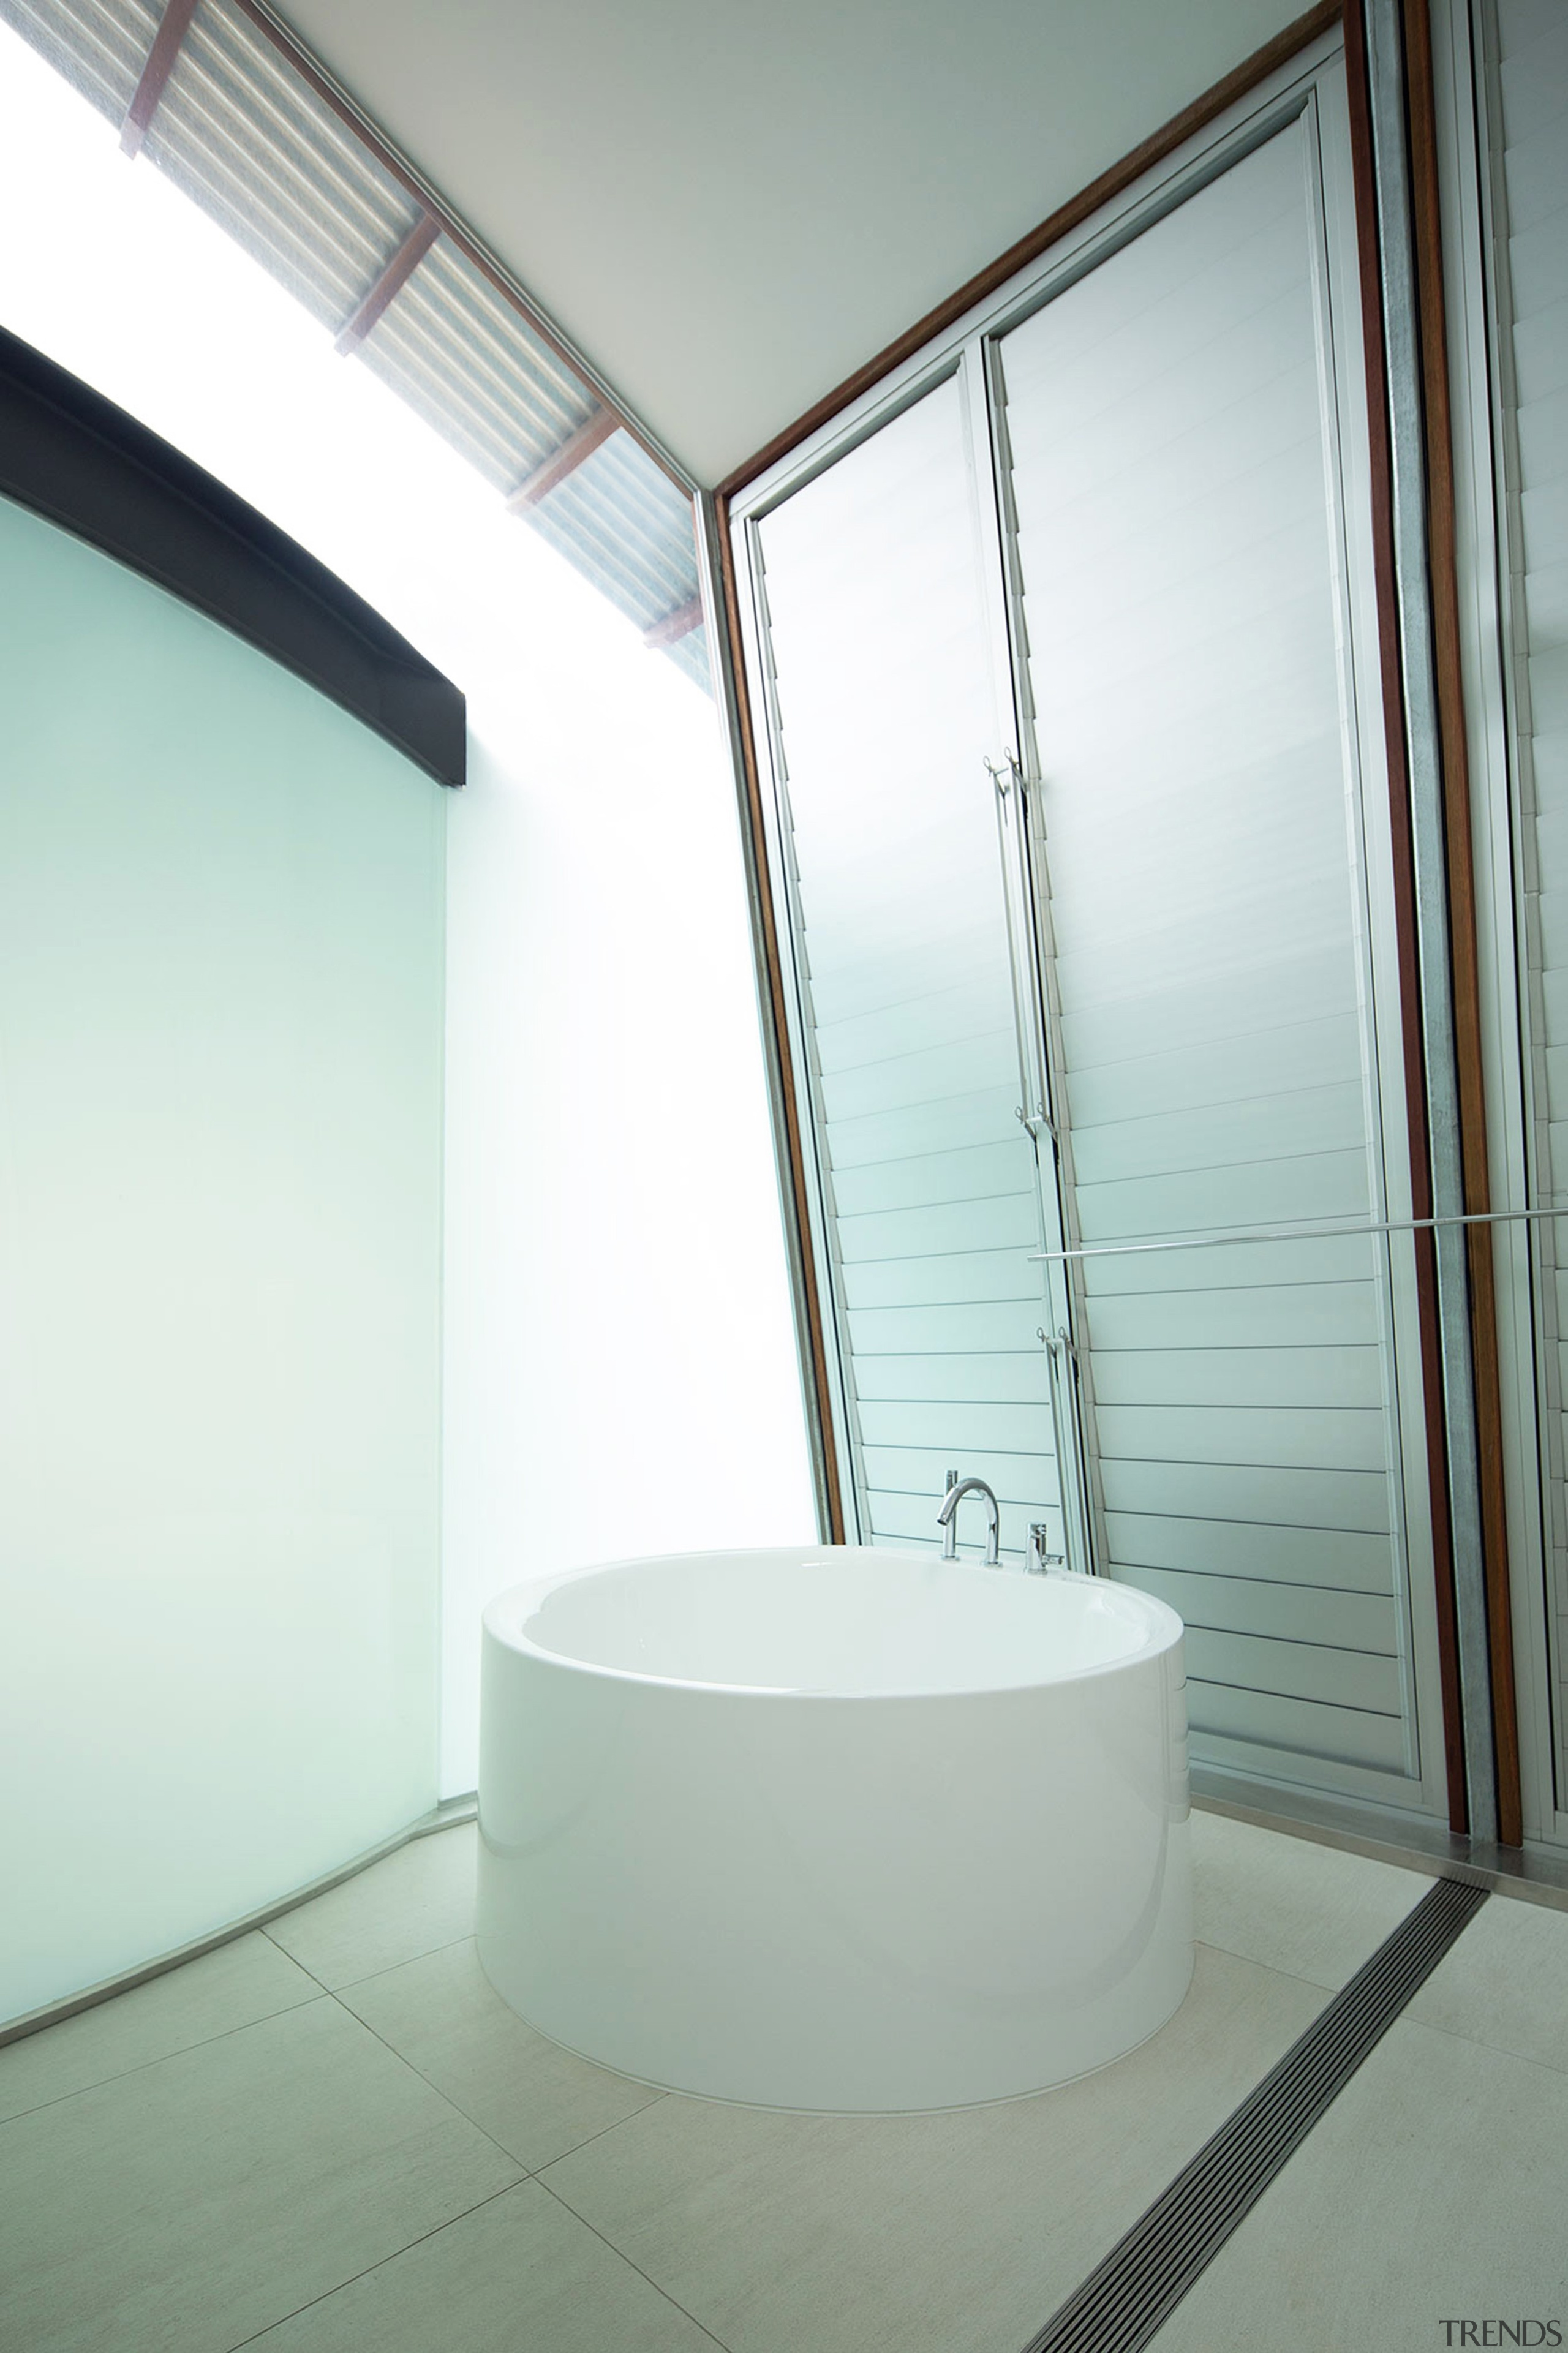 Highly Commended – Cplusc Architectural Workshop architecture, bathroom, daylighting, daytime, glass, house, interior design, room, window, white, gray